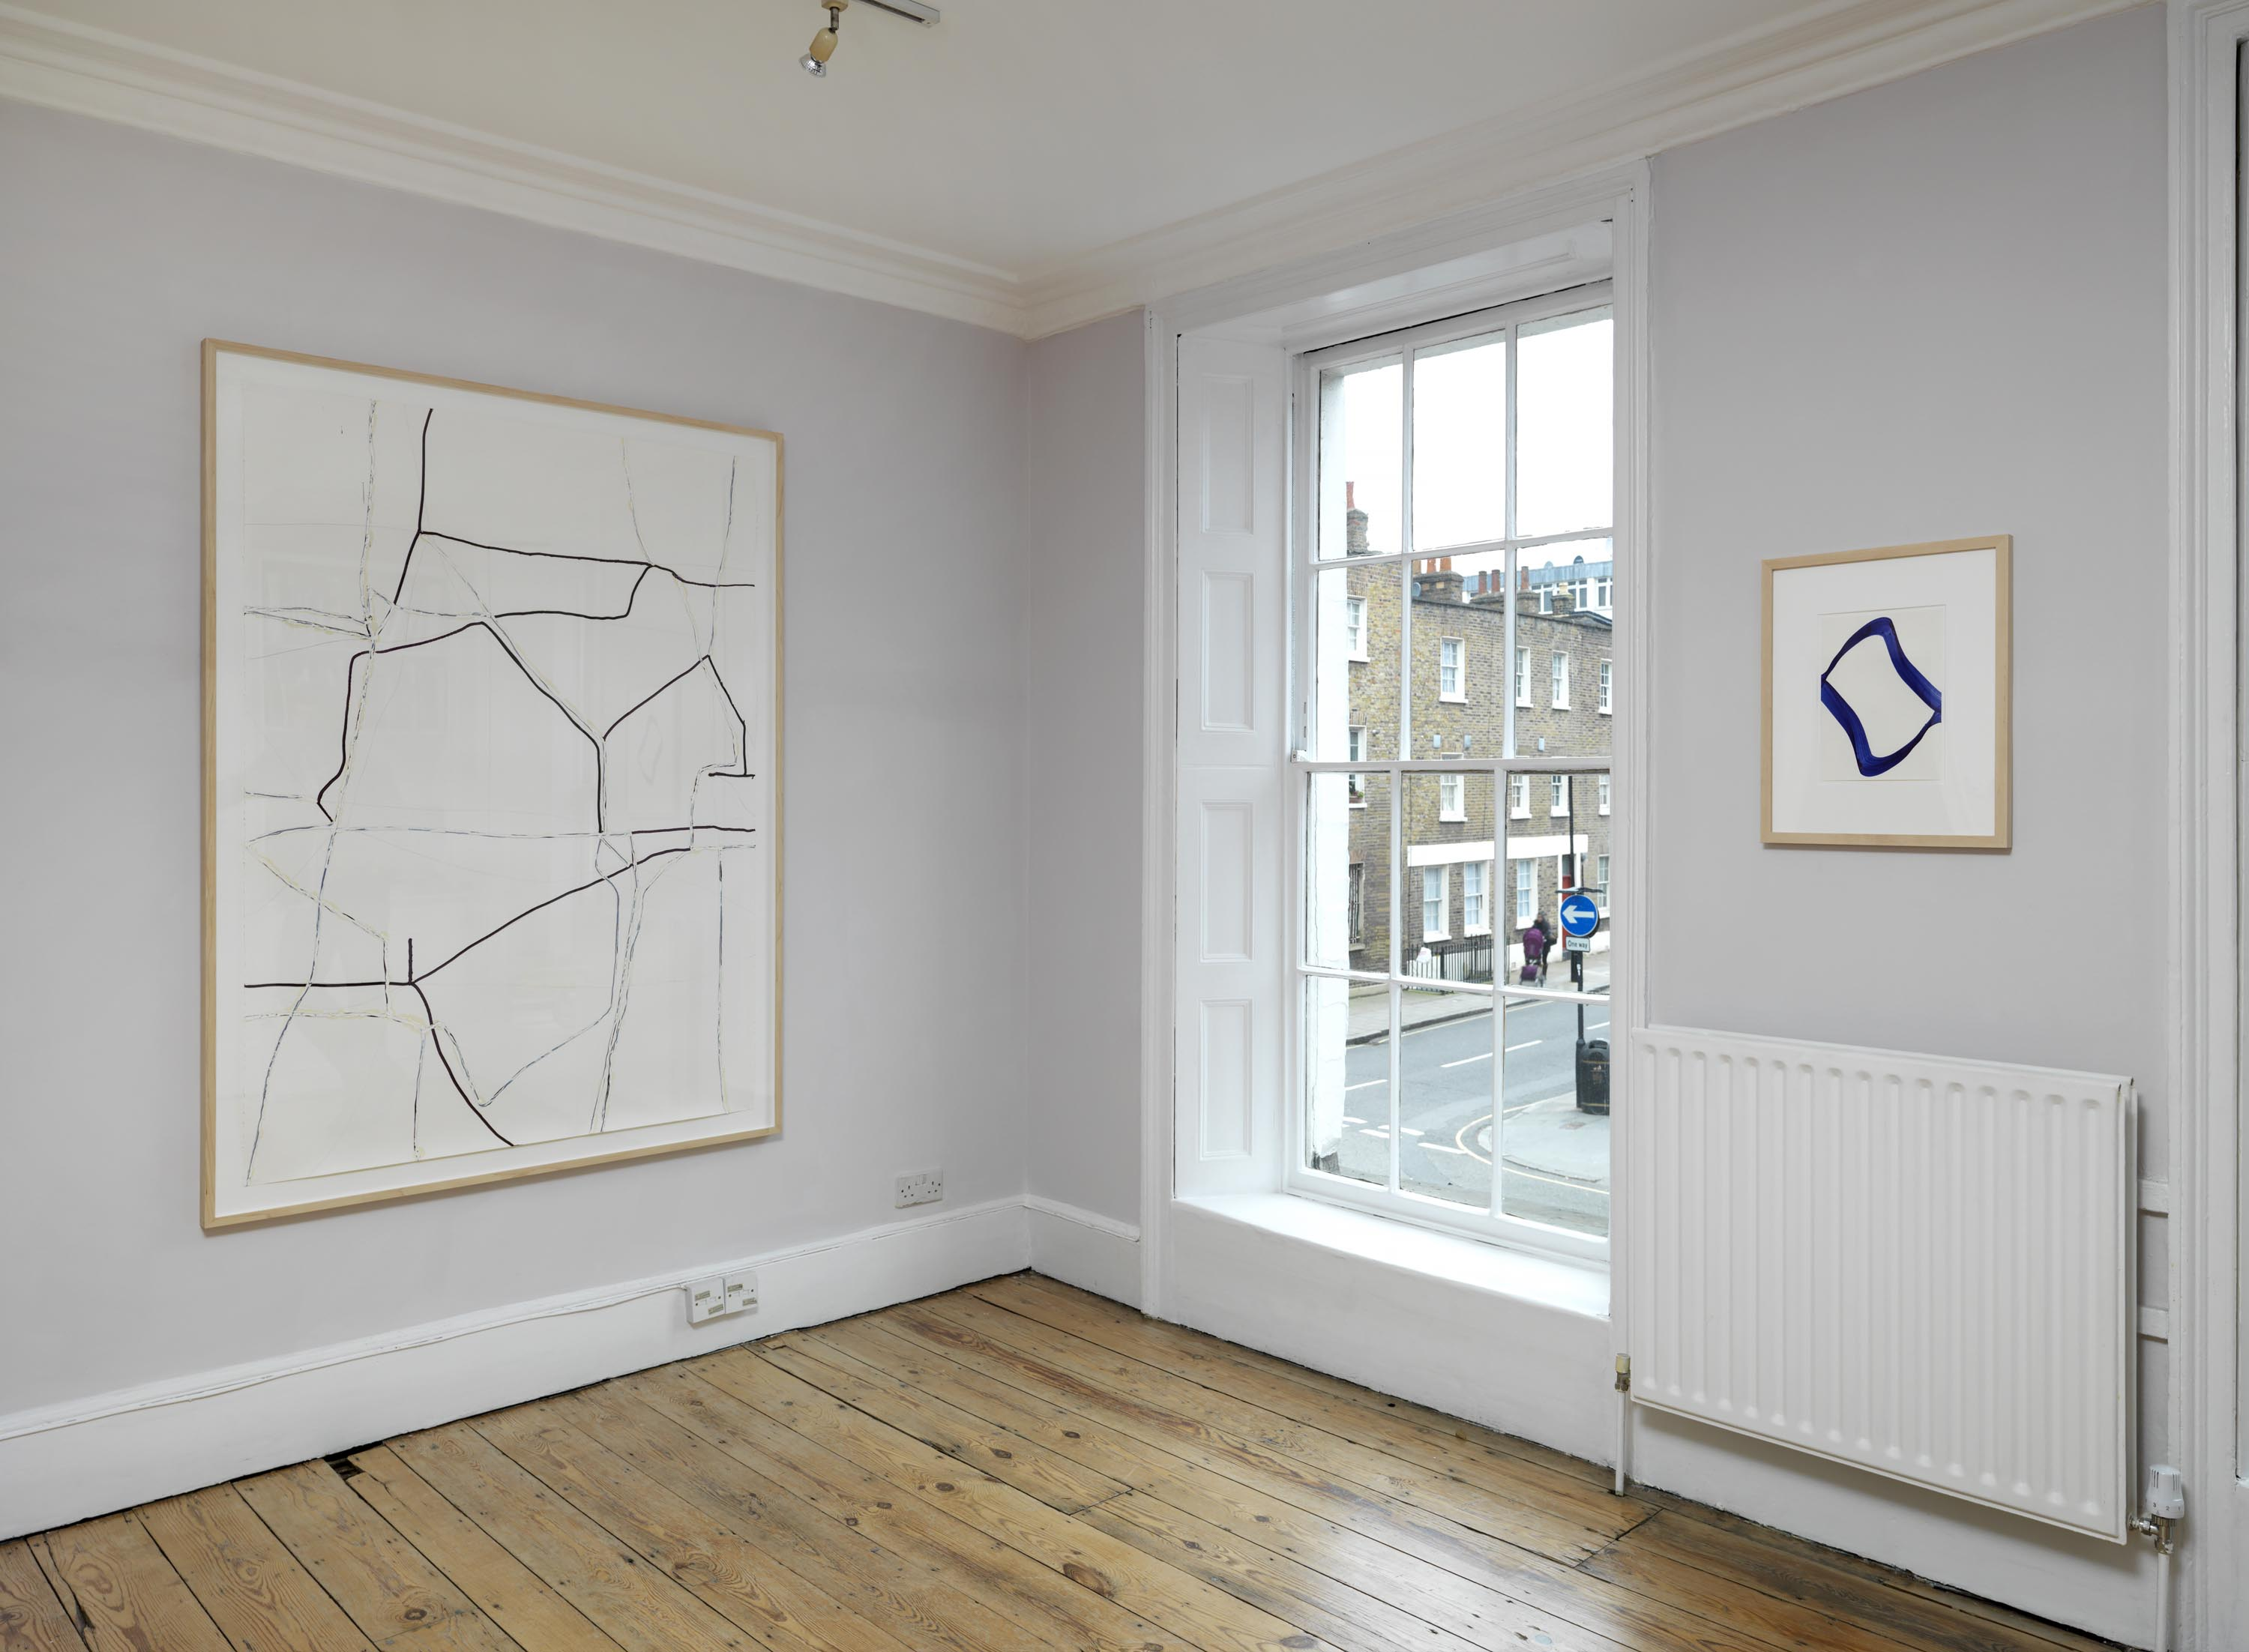 Patrick-heide-thomas-mueller-different-lines-installation-shot3